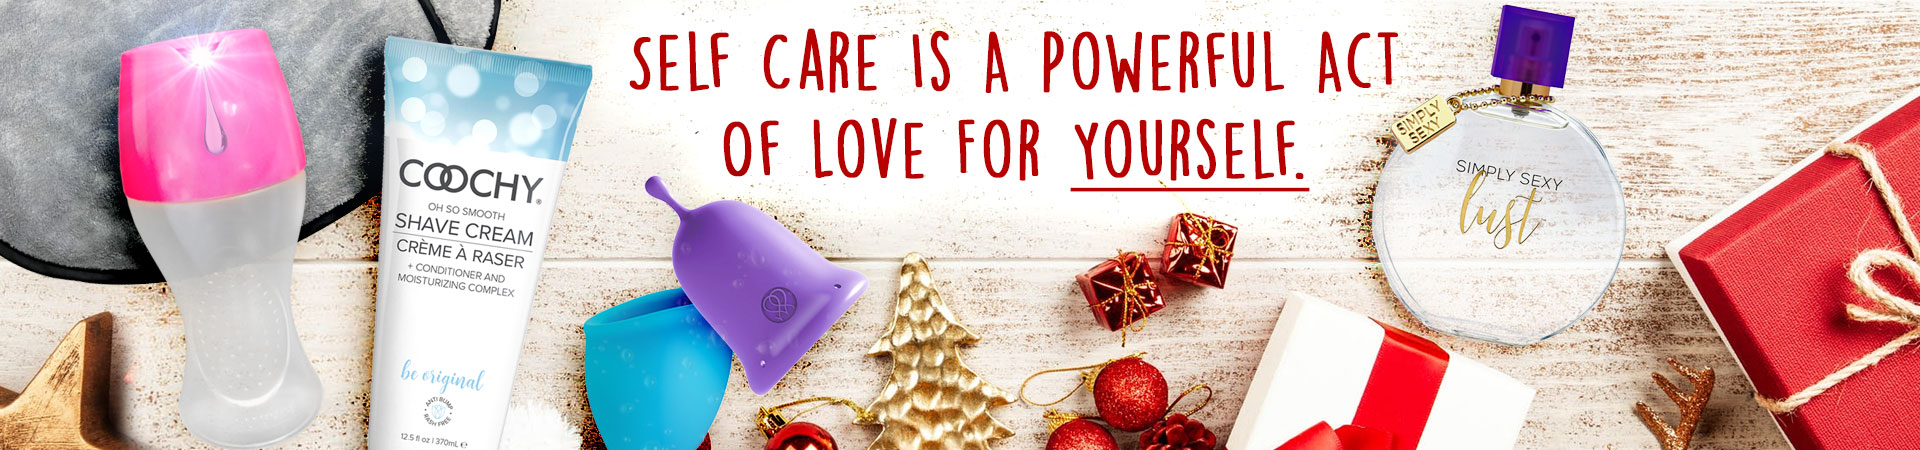 "SheVibe Wants You To Put Yourself At The Top Of Your Holiday ""To Do List"" With These Lovely Self-Care Suggestions!"